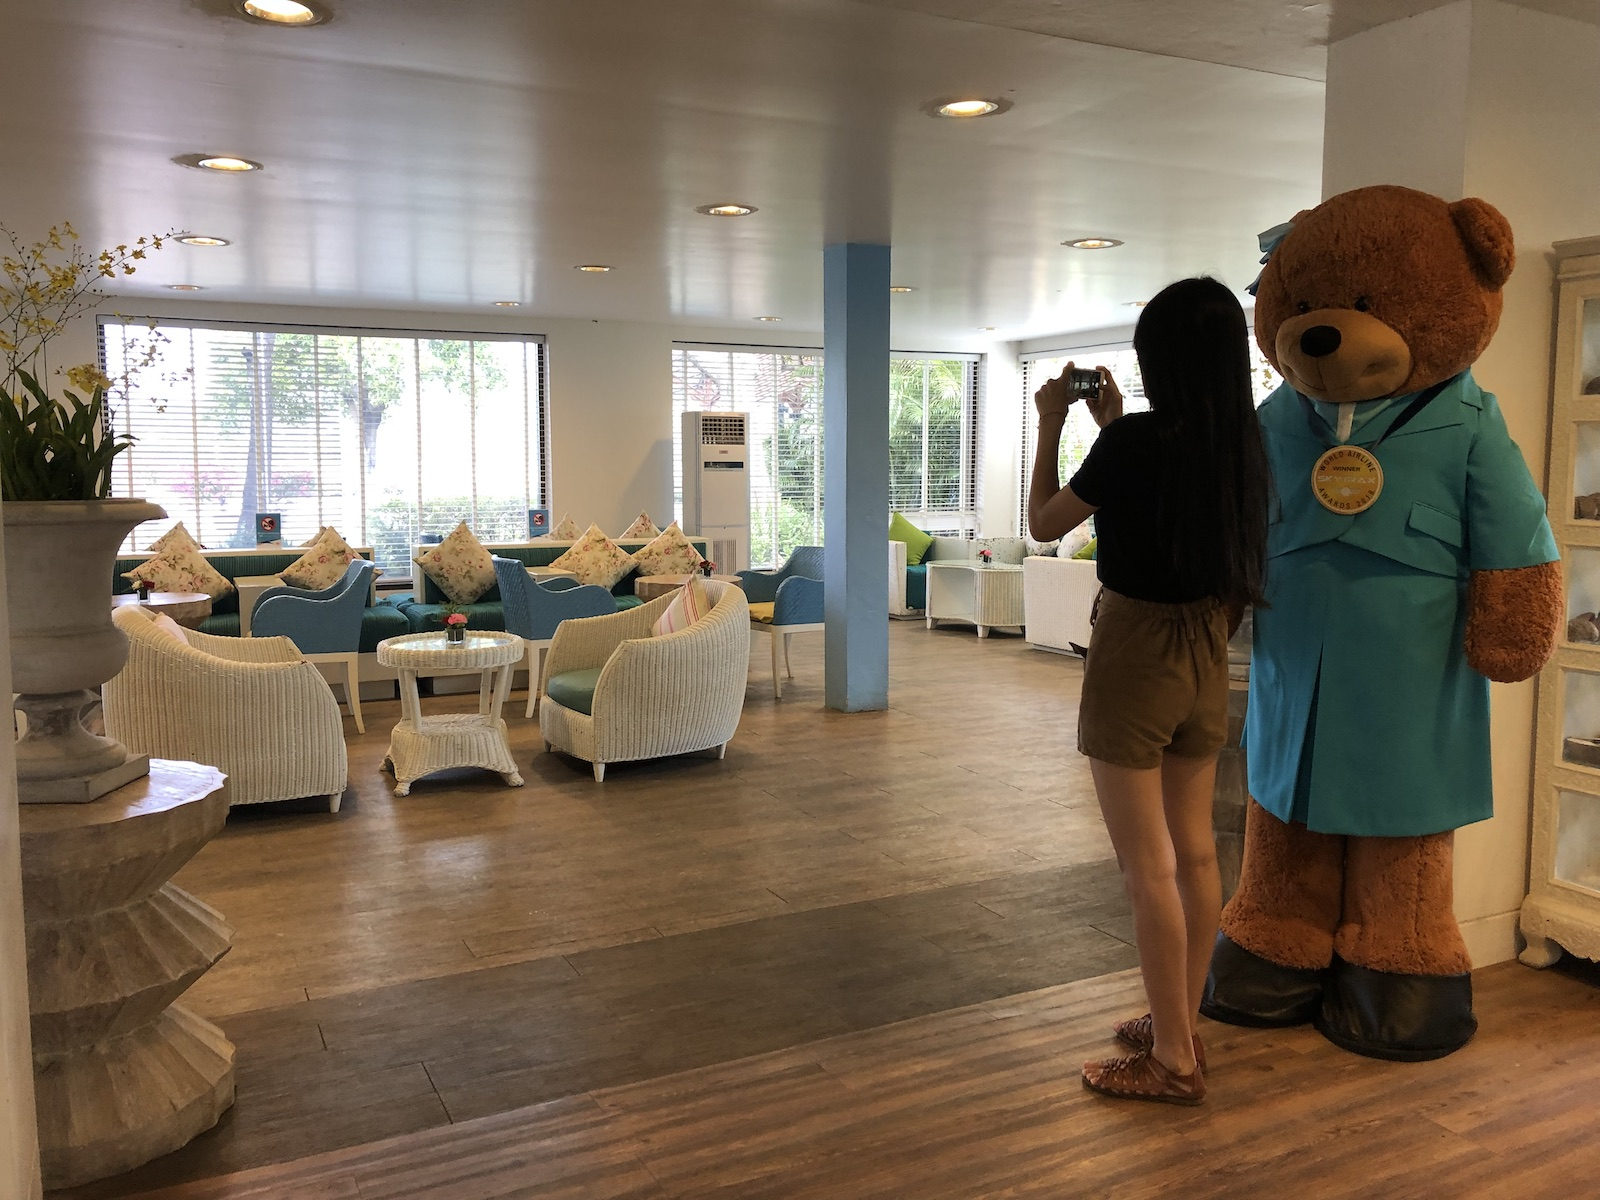 The Bear at Koh Samui Airport- Blue Ribbon Lounge, Thailand.